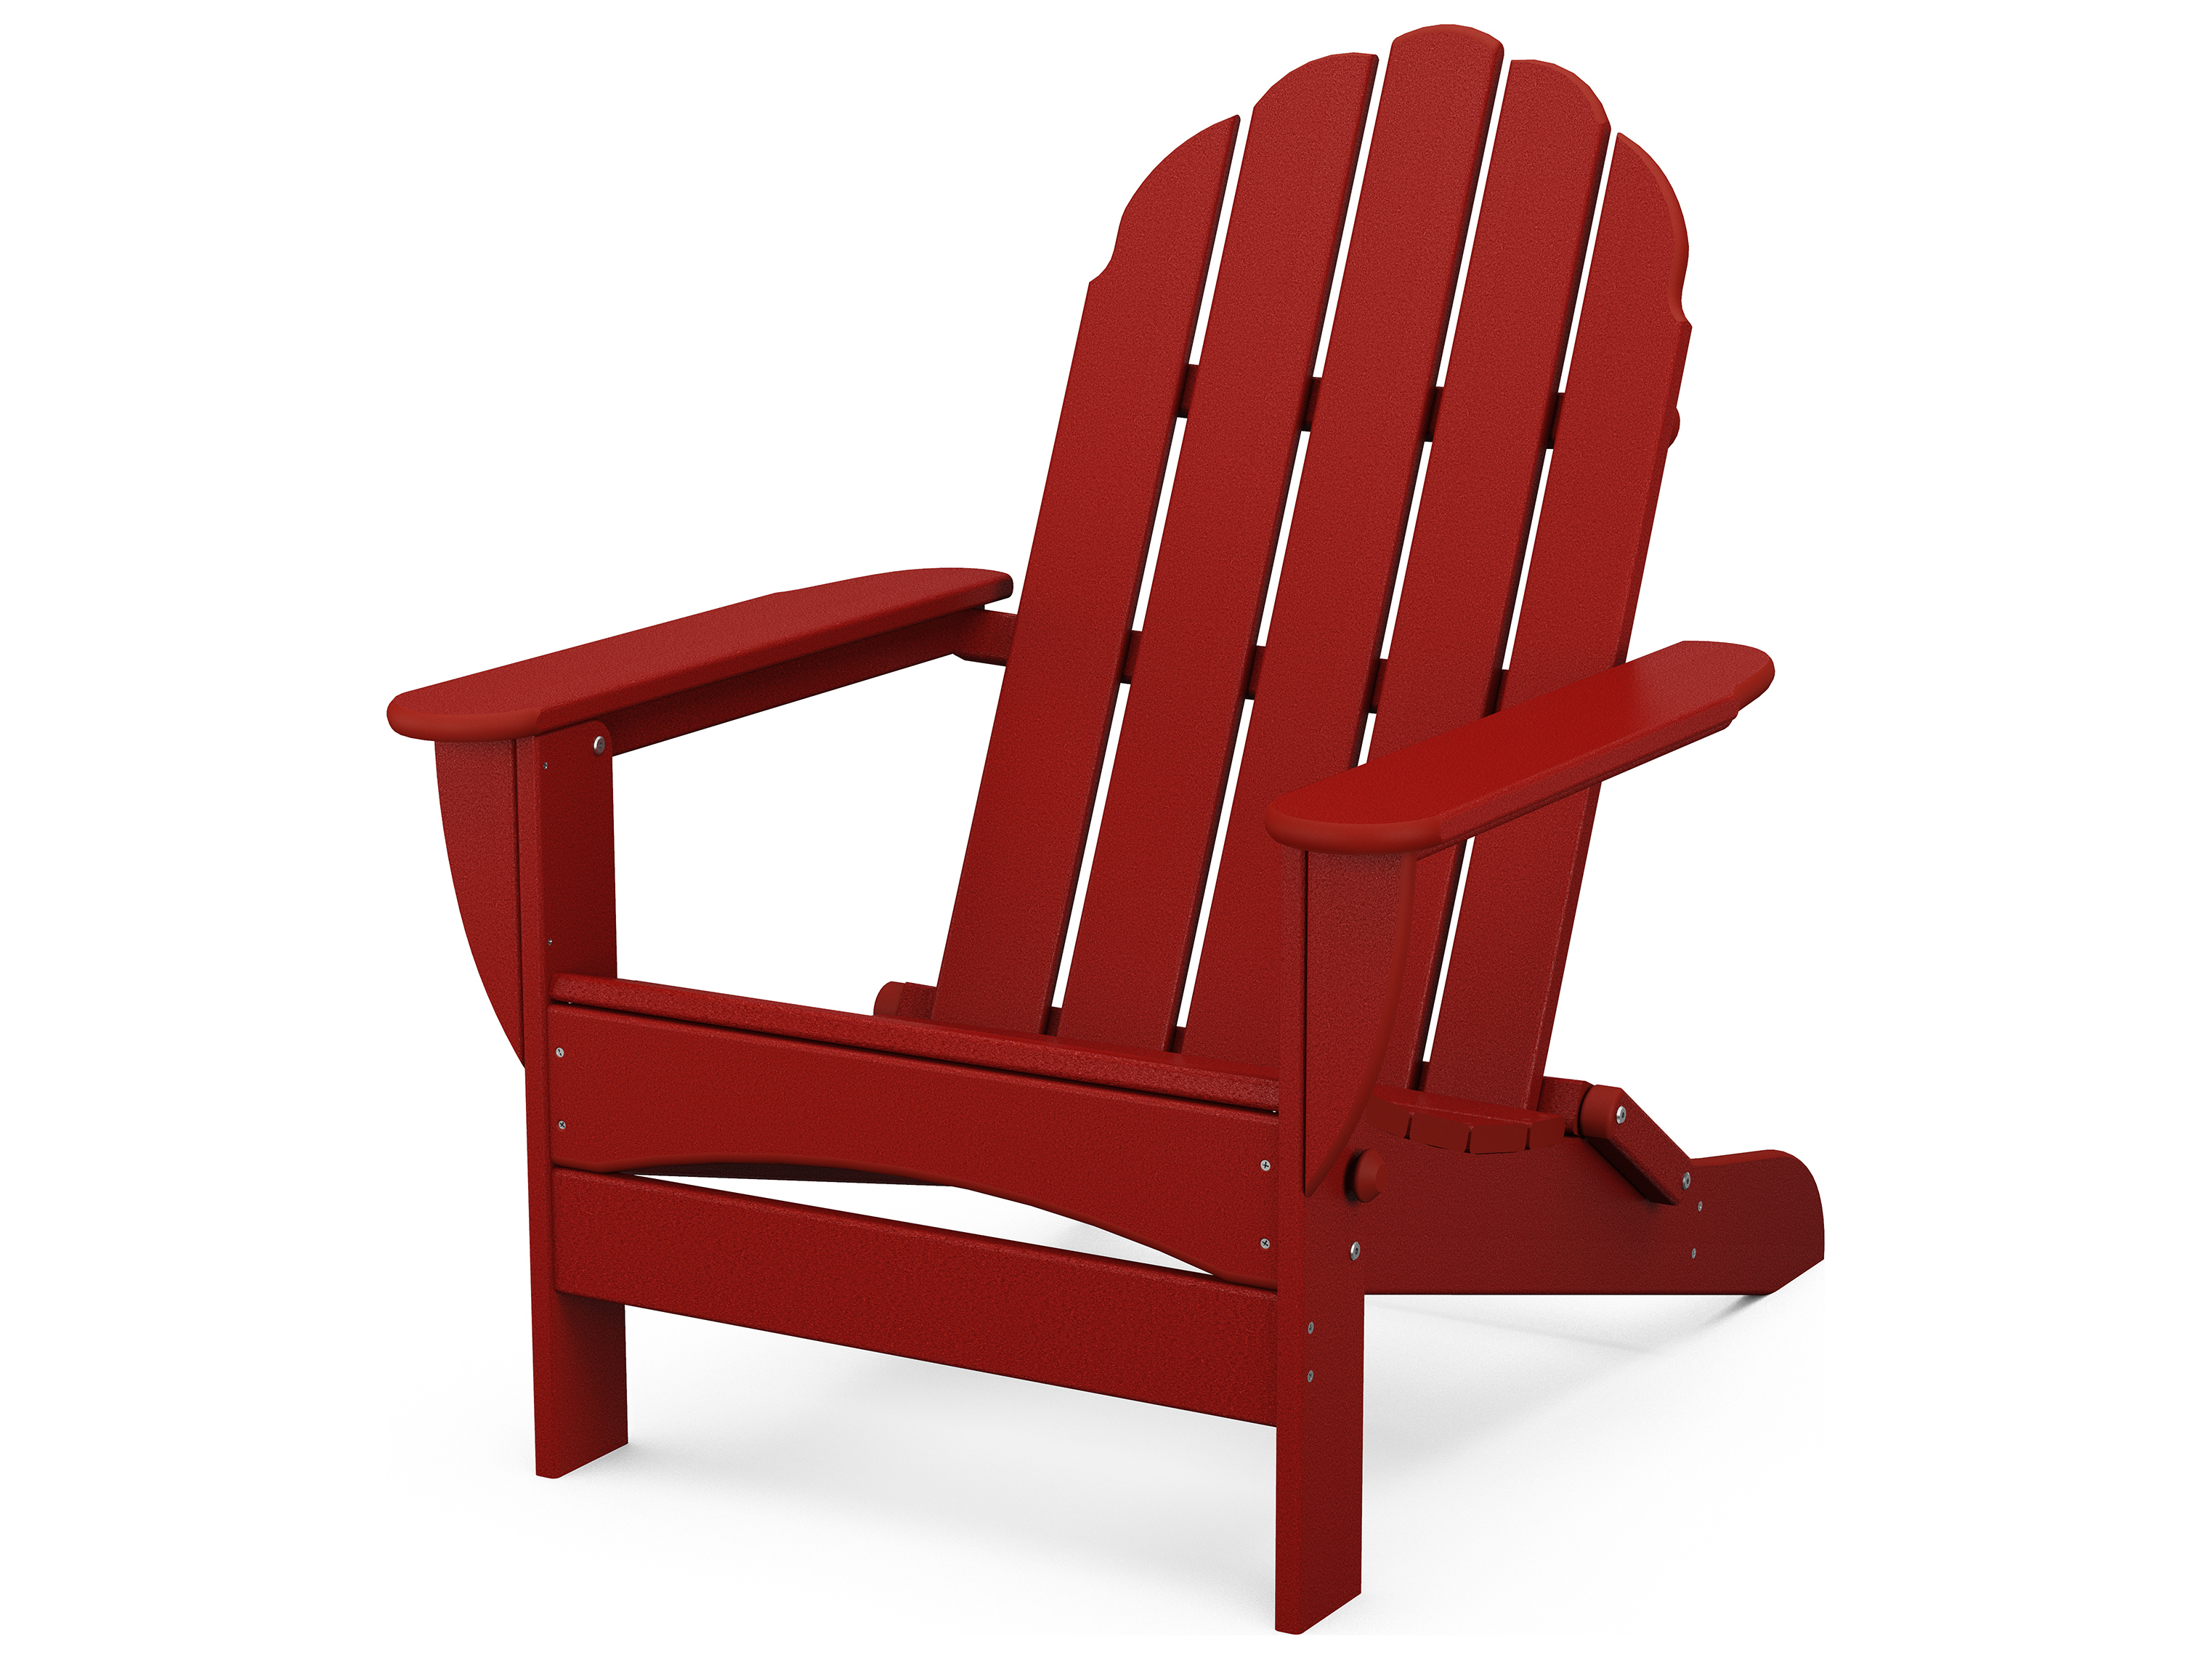 The Best Resin Adirondack Chairs